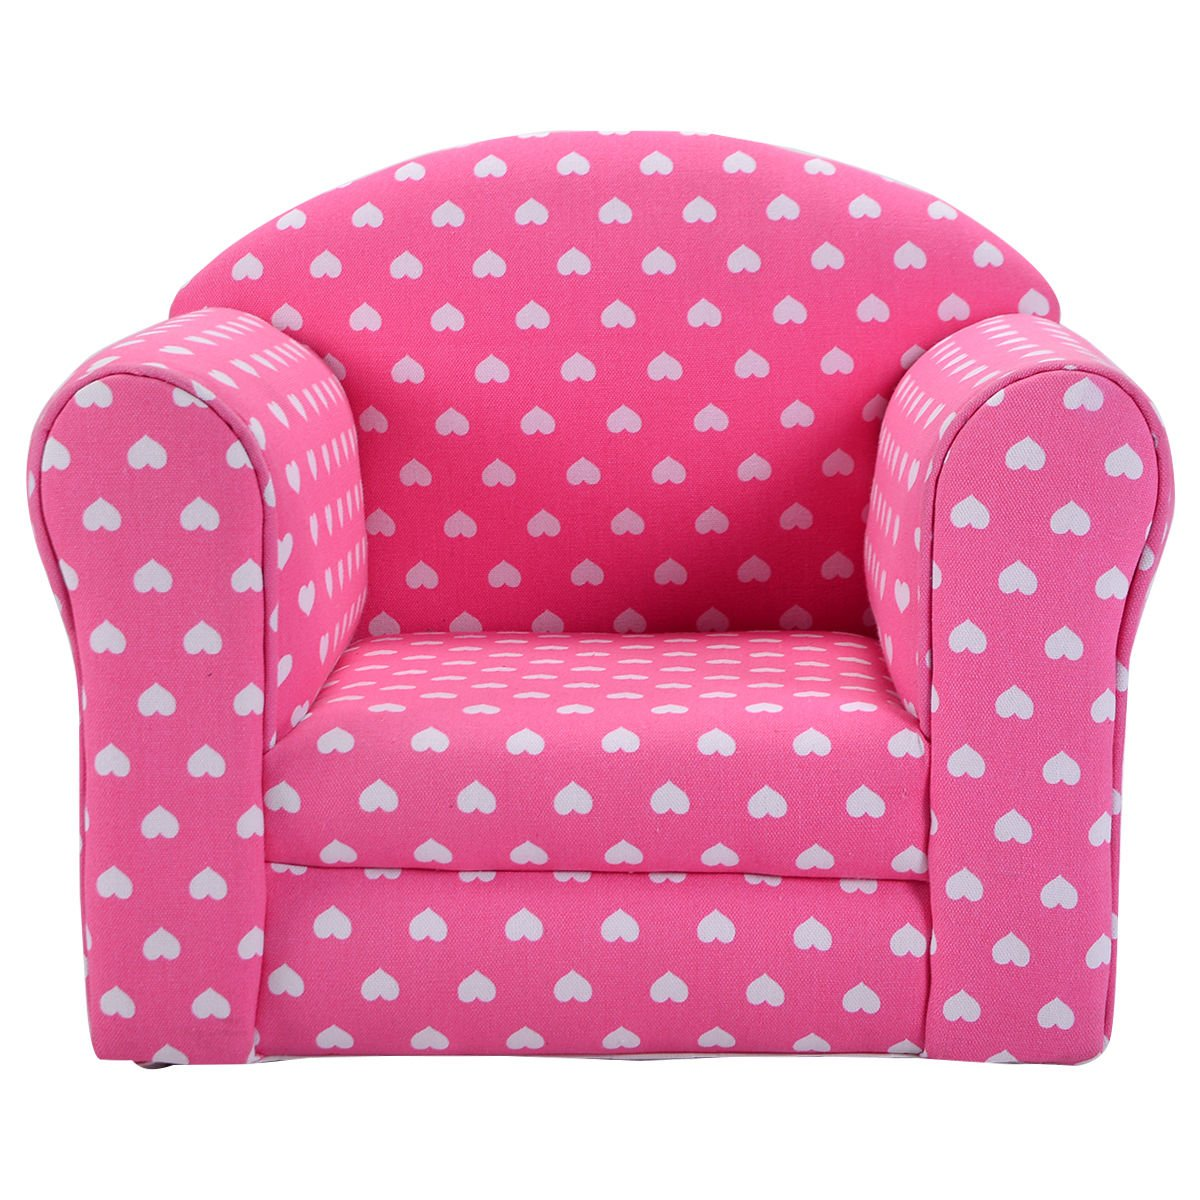 Costzon Kids Sofa Armrest Chair Couch Children Living Room Toddler  Furniture (pink)